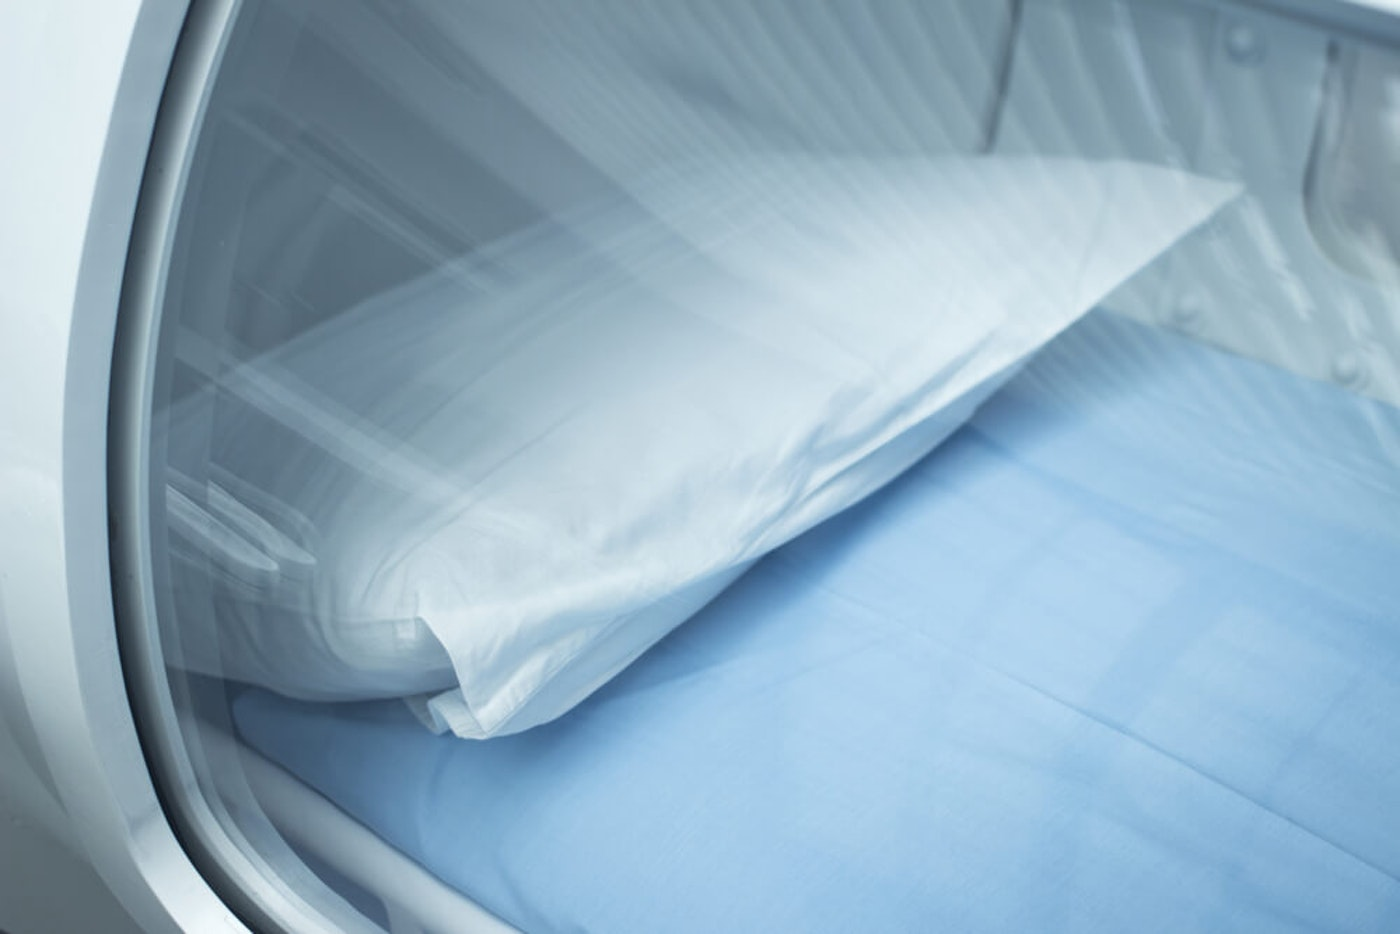 Hyperbaric Oxygen Used to Help PTSD Patients